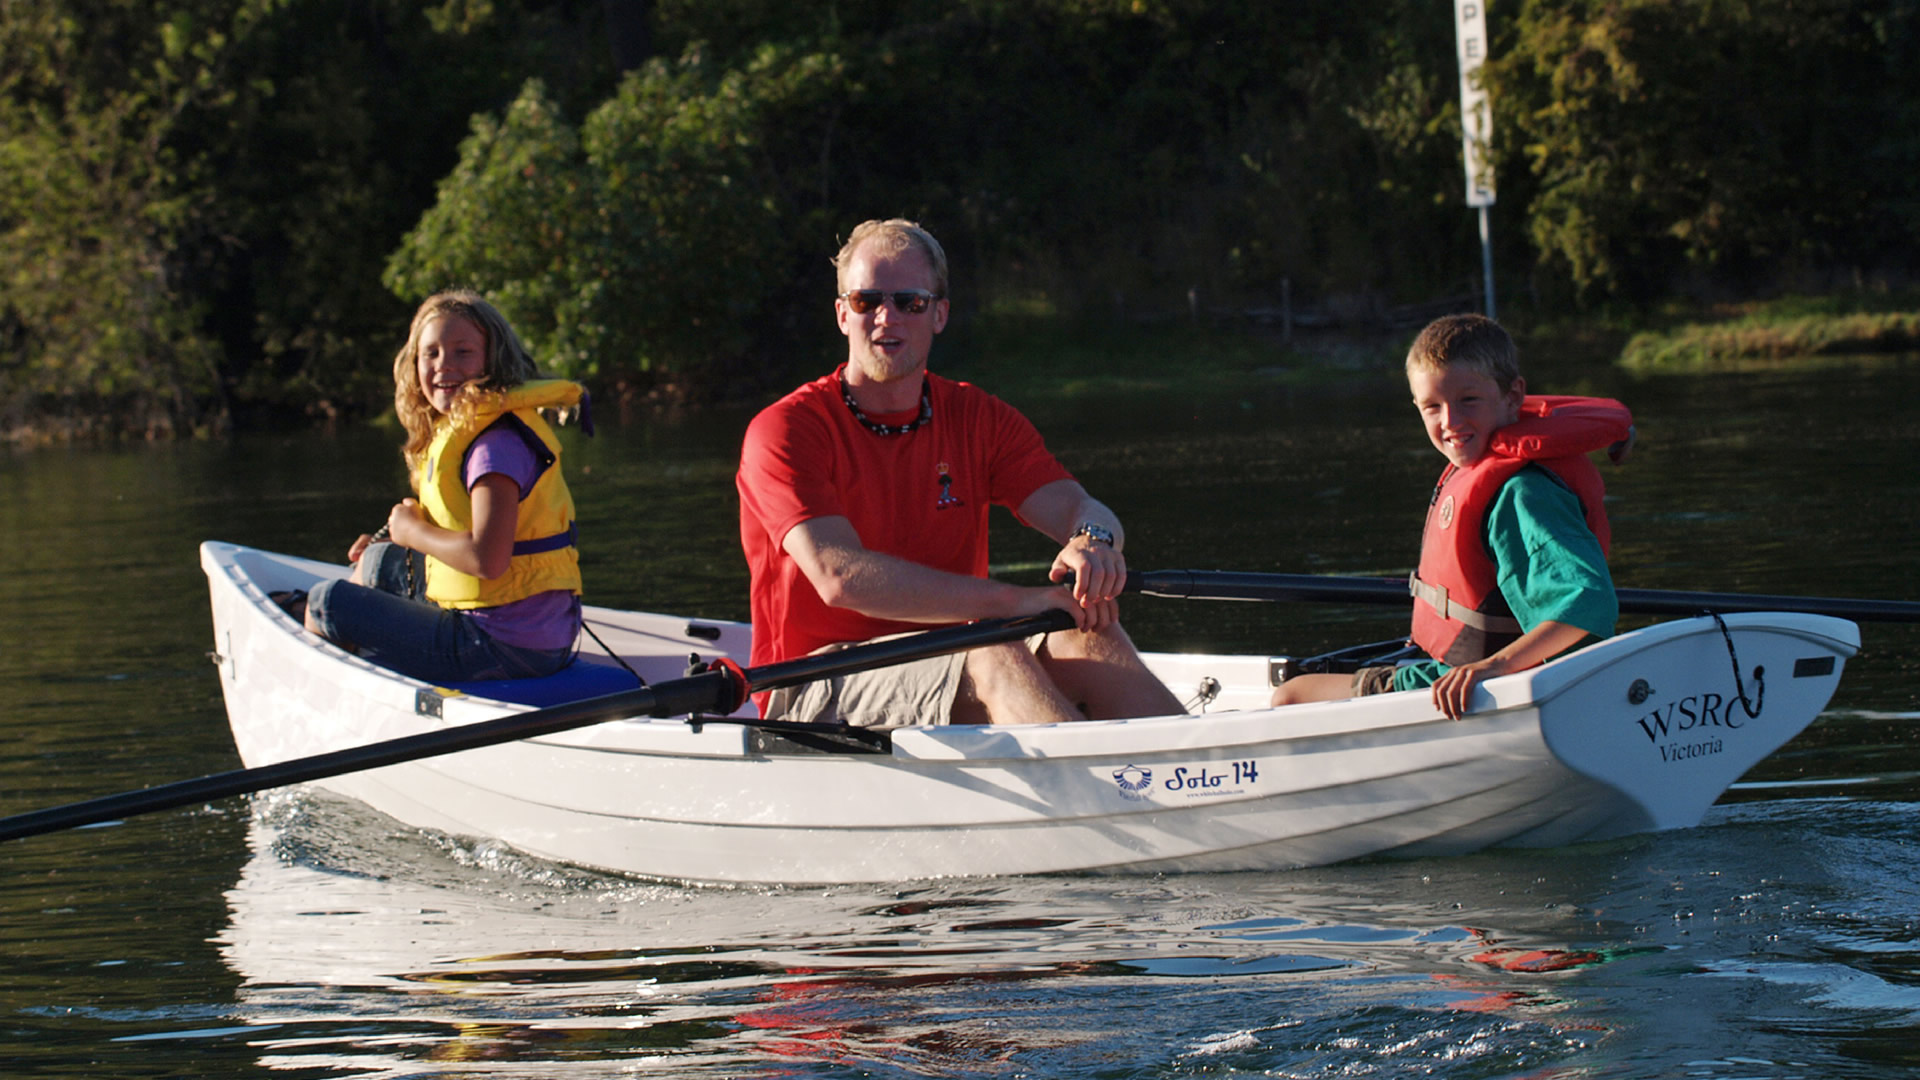 Solo-14-Whitehall-Rowing-and-Sail-boats